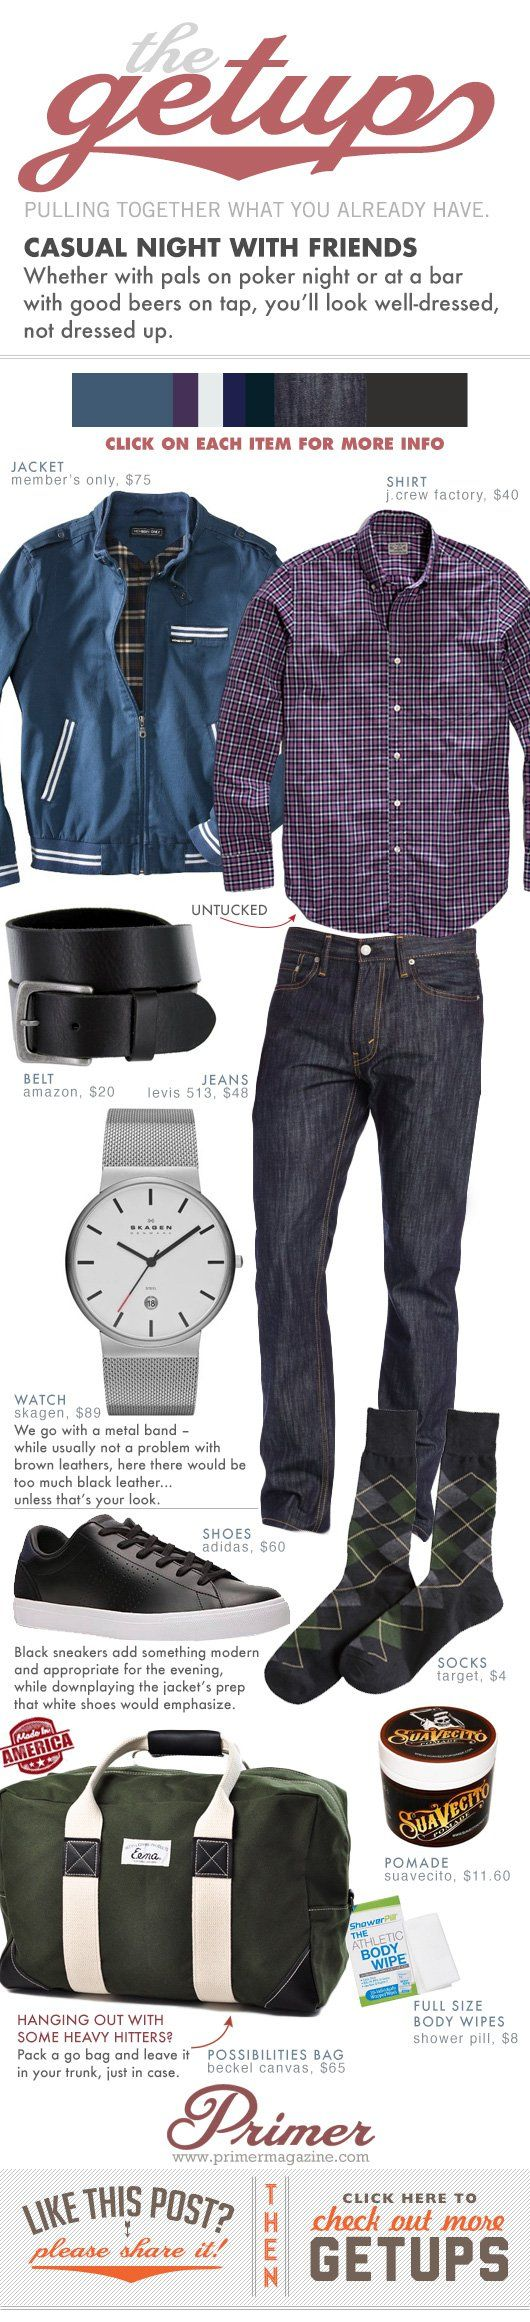 The Getup: Casual Night with Friends   Primer